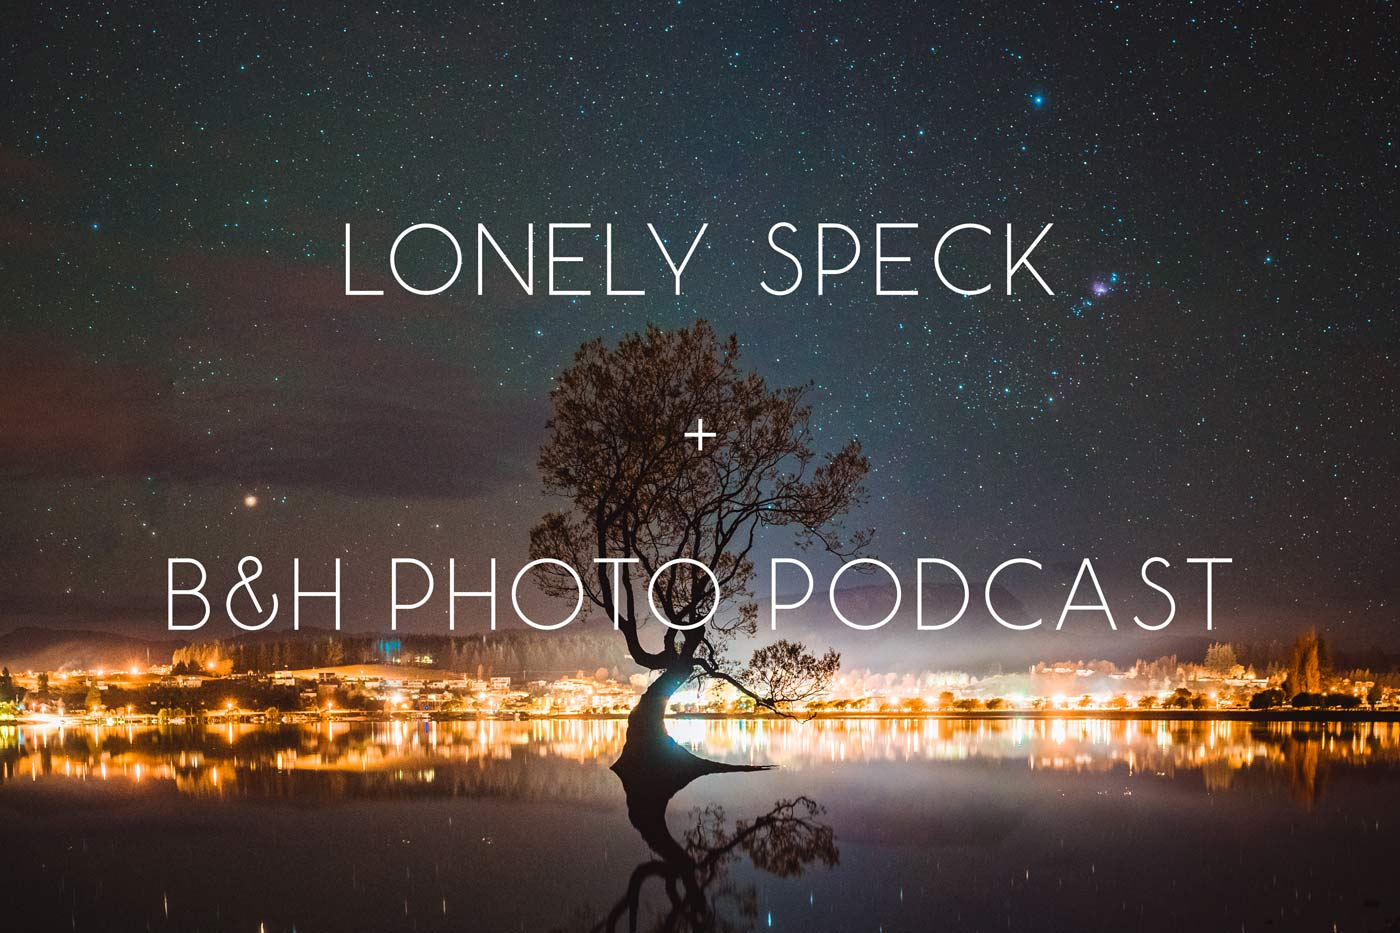 lonely-speck-featured-on-the-bh-photography-podcast